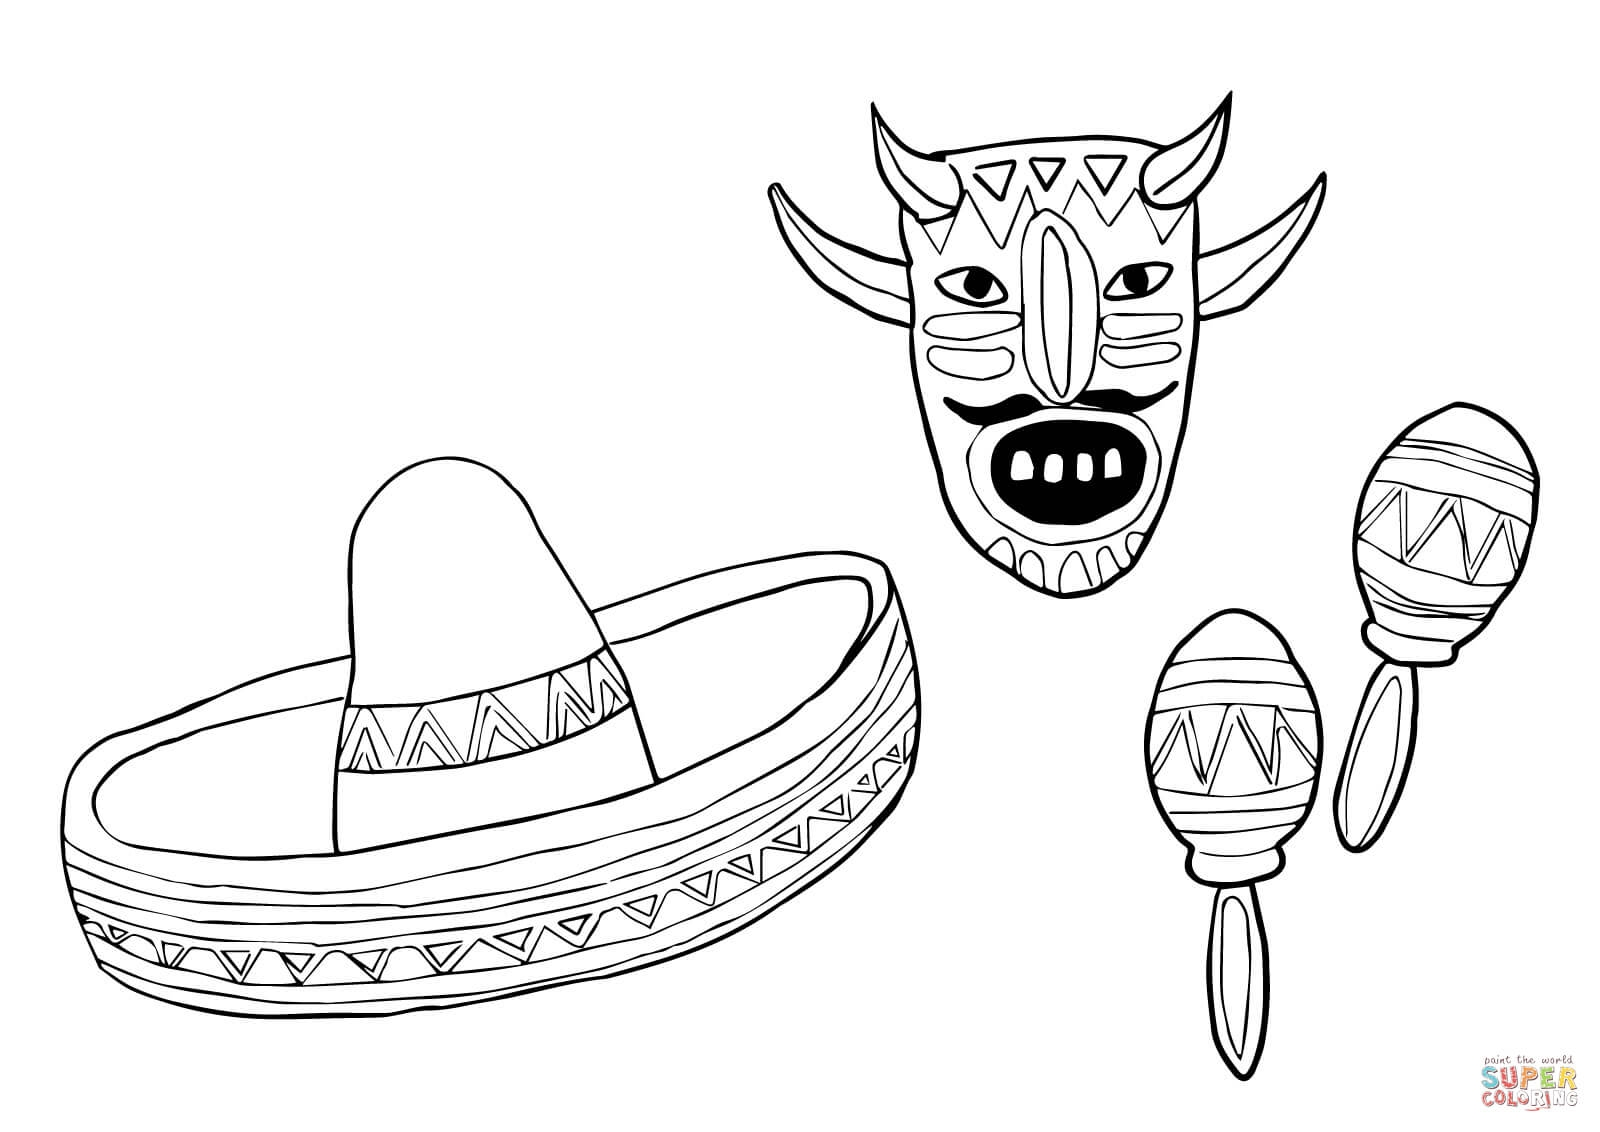 Sombrero Coloring Page - Mask sombrero and Maracas Coloring Line